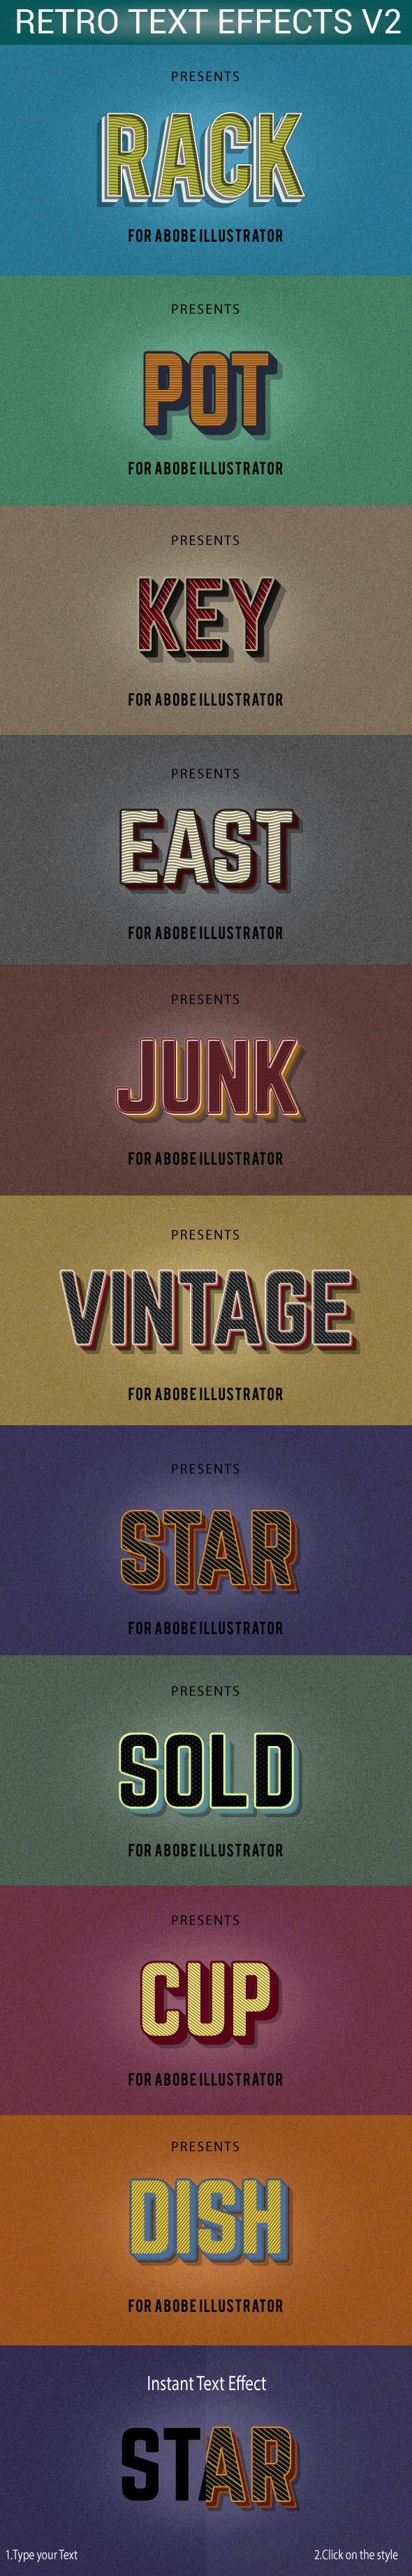 10 Defferent Retro Styles For Illustrator - Styles Illustrator